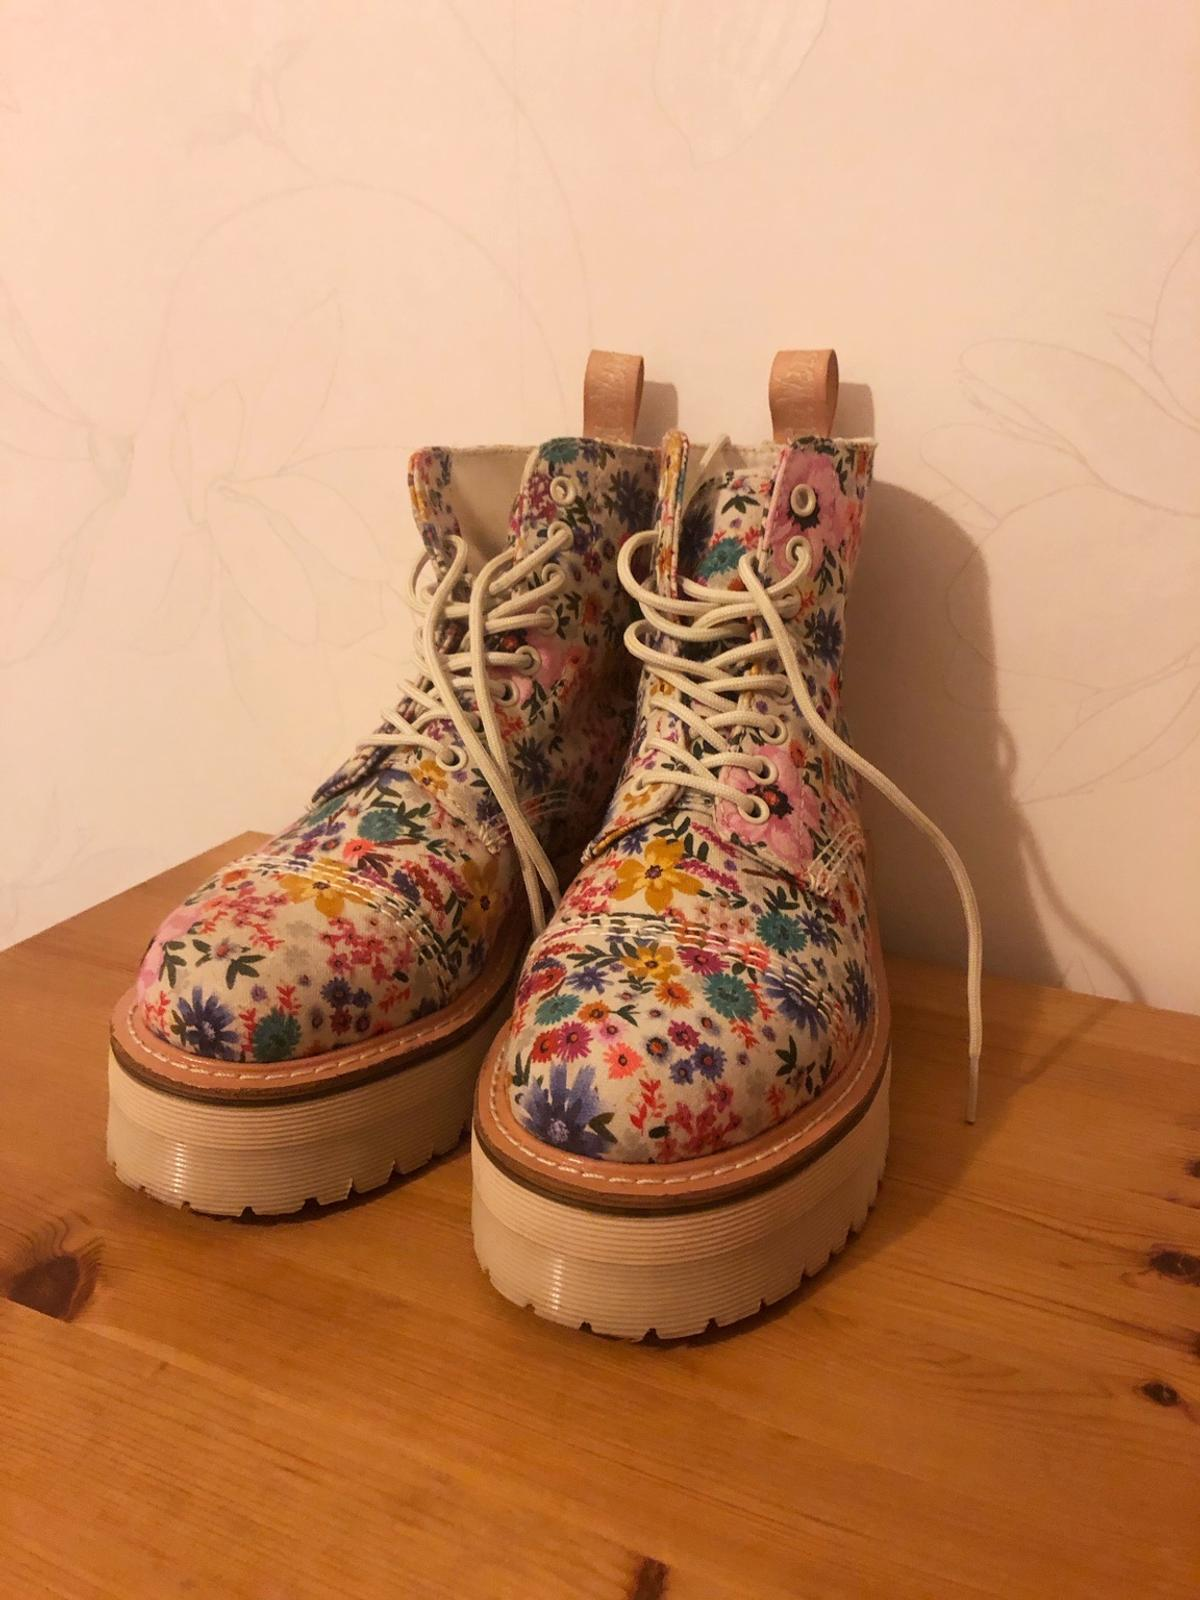 Size 38. They are never used (don't have the package left tho).